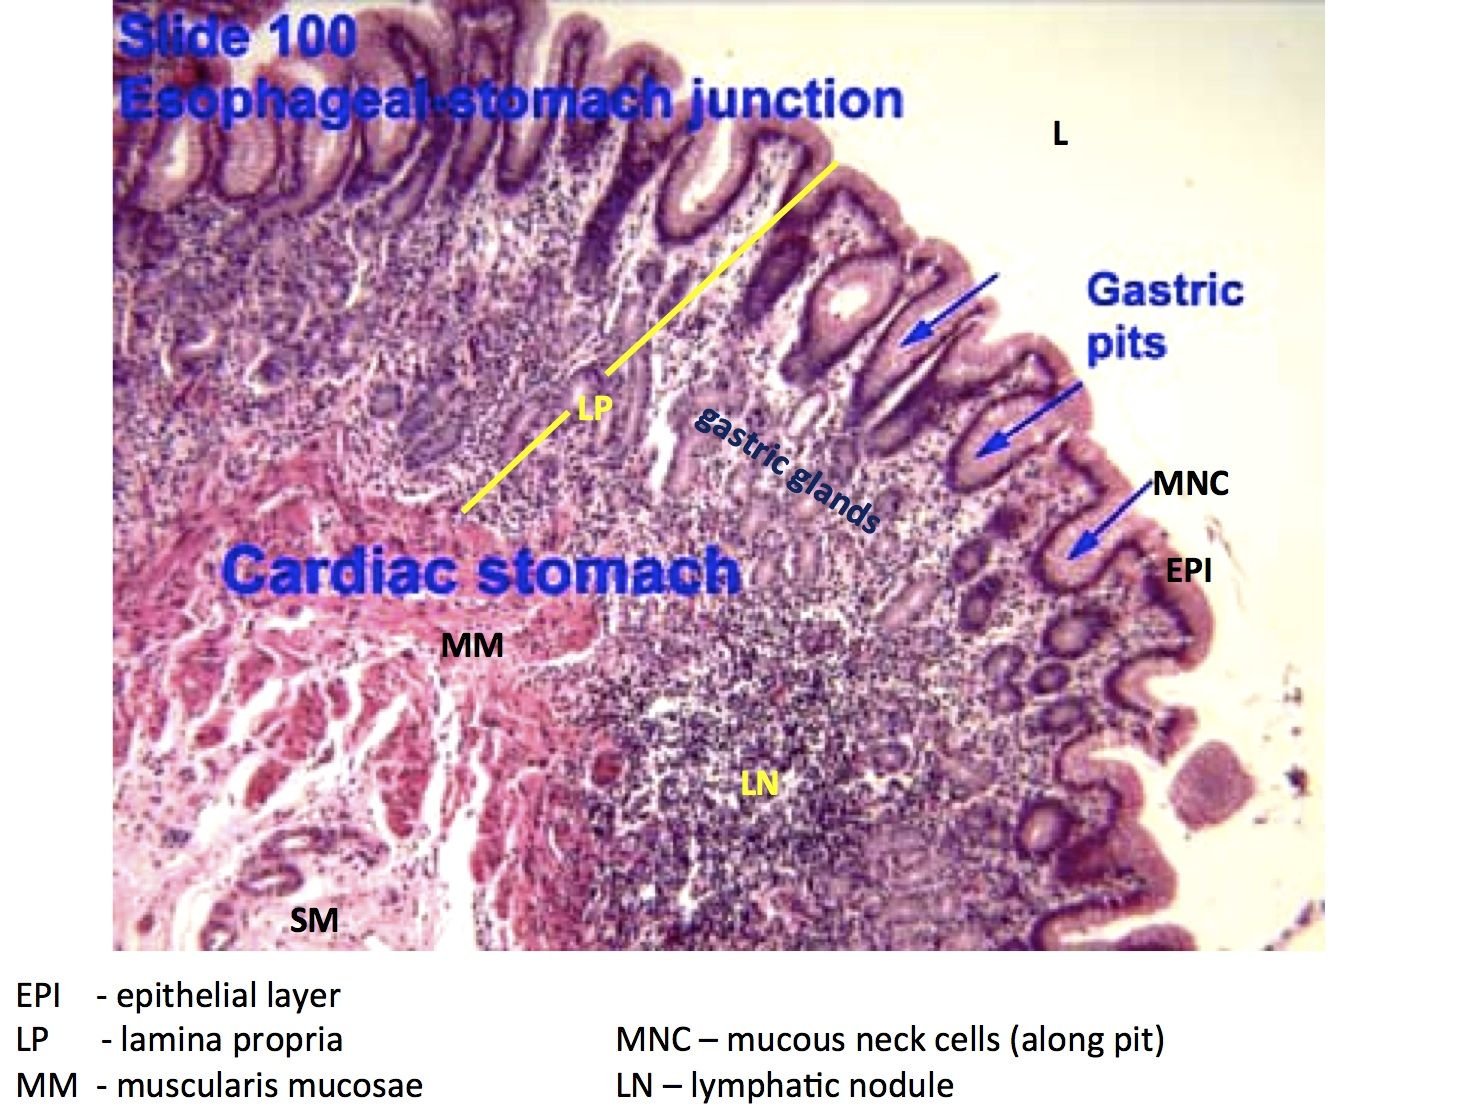 Hsitology Esophagus Stomach Junction And Gastric Pits